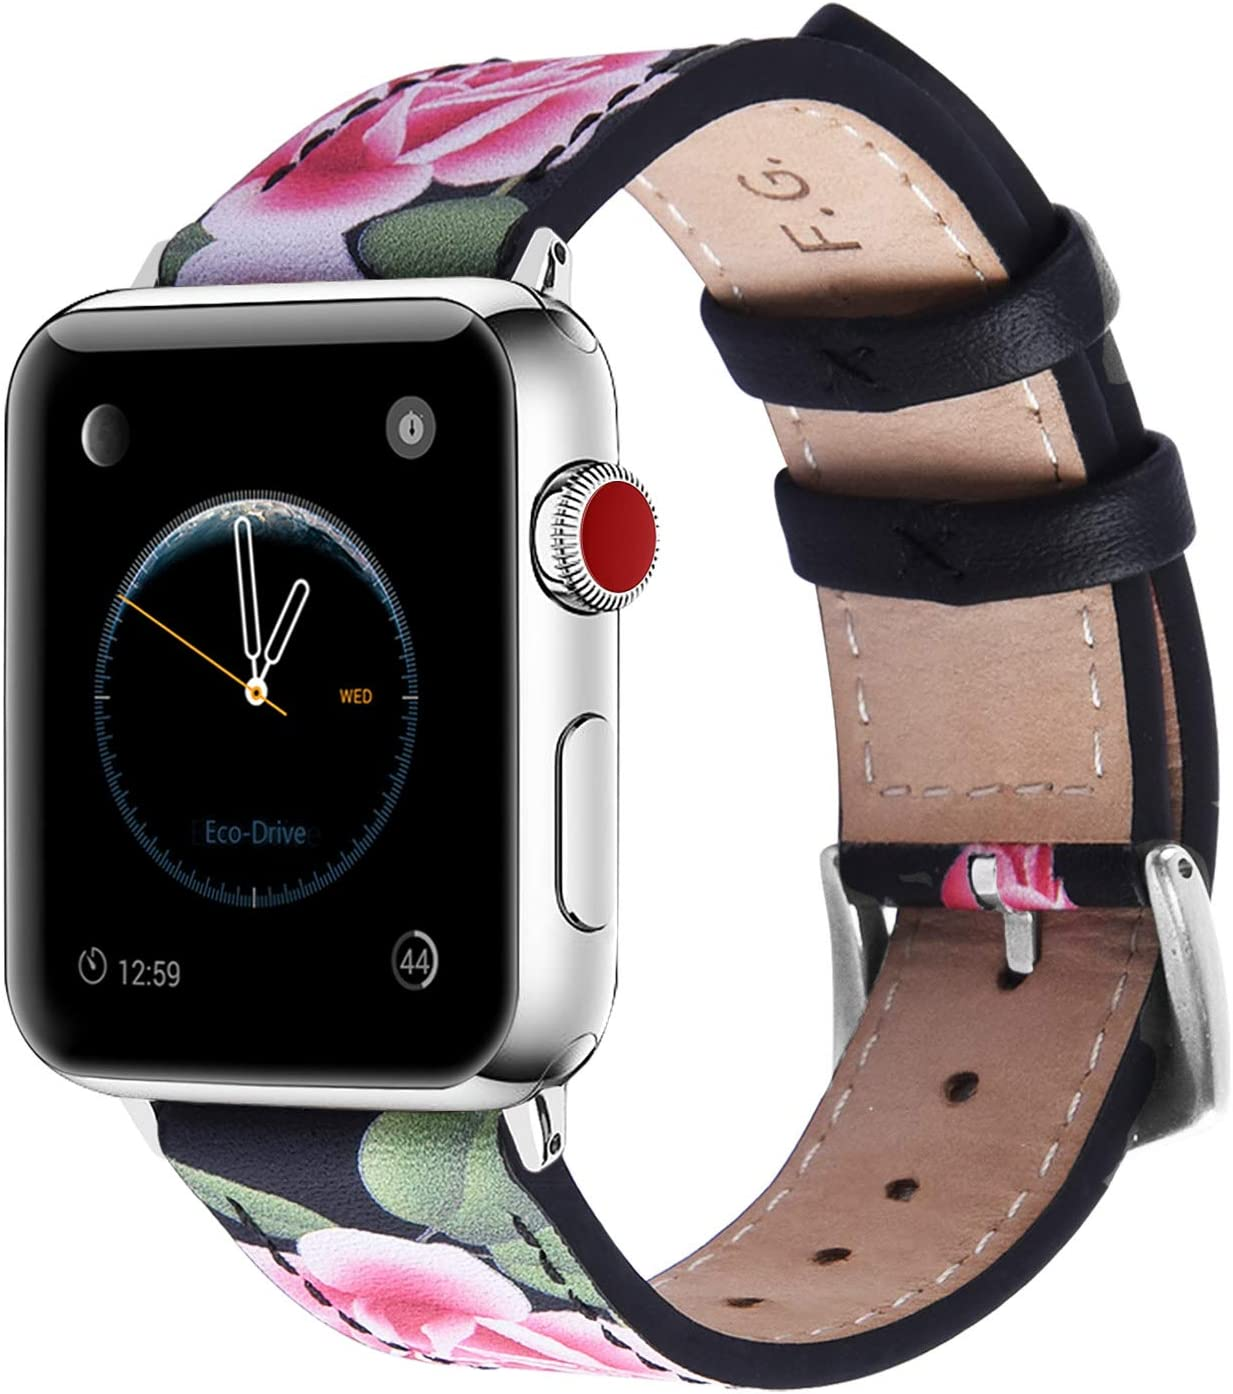 Fullmosa Apple Watch Band 42mm 44mm 40mm 38mm, Galeri Printed Leather Apple Watch Band Compatible for iWatch Series SE/6/5/4/3/2/1,42mm Black